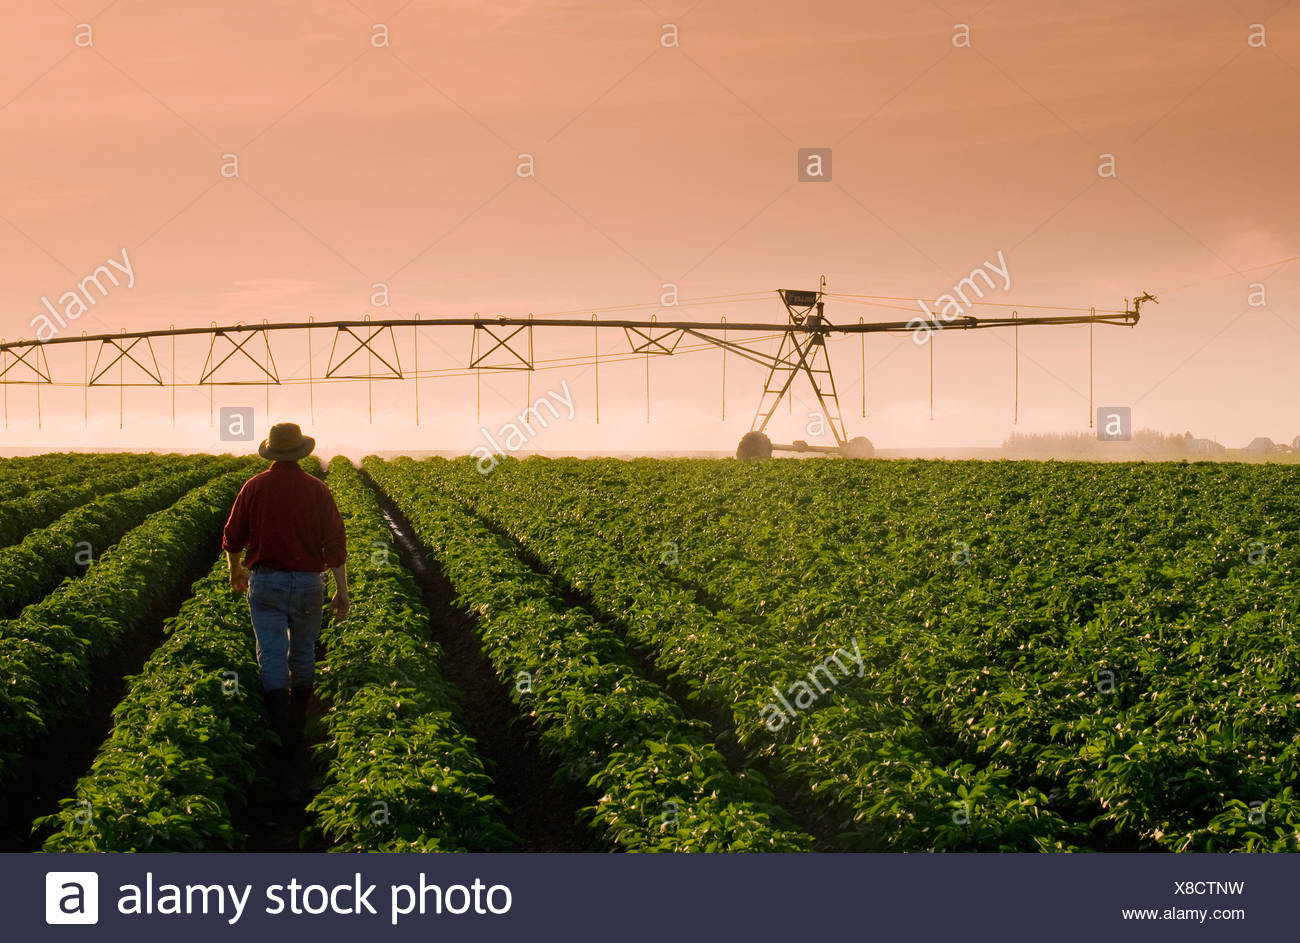 A farmer stands in his mid growth potato field observing a center pivot irrigation system in operation in late afternoon light. - Stock Image